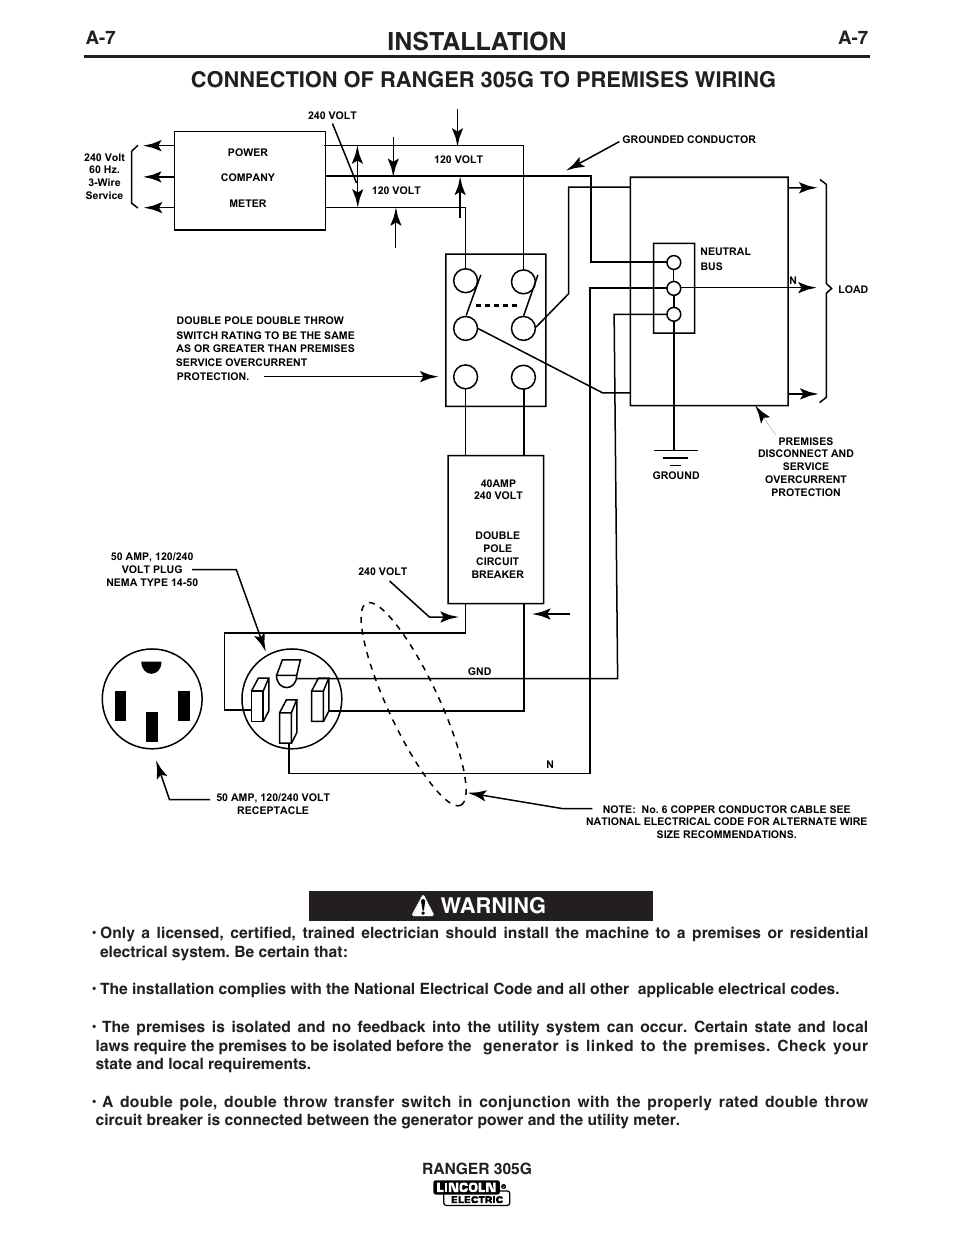 hight resolution of lincoln 305g wiring diagram wiring library lincoln 305g wiring diagram installation lincoln electric ranger 305g user